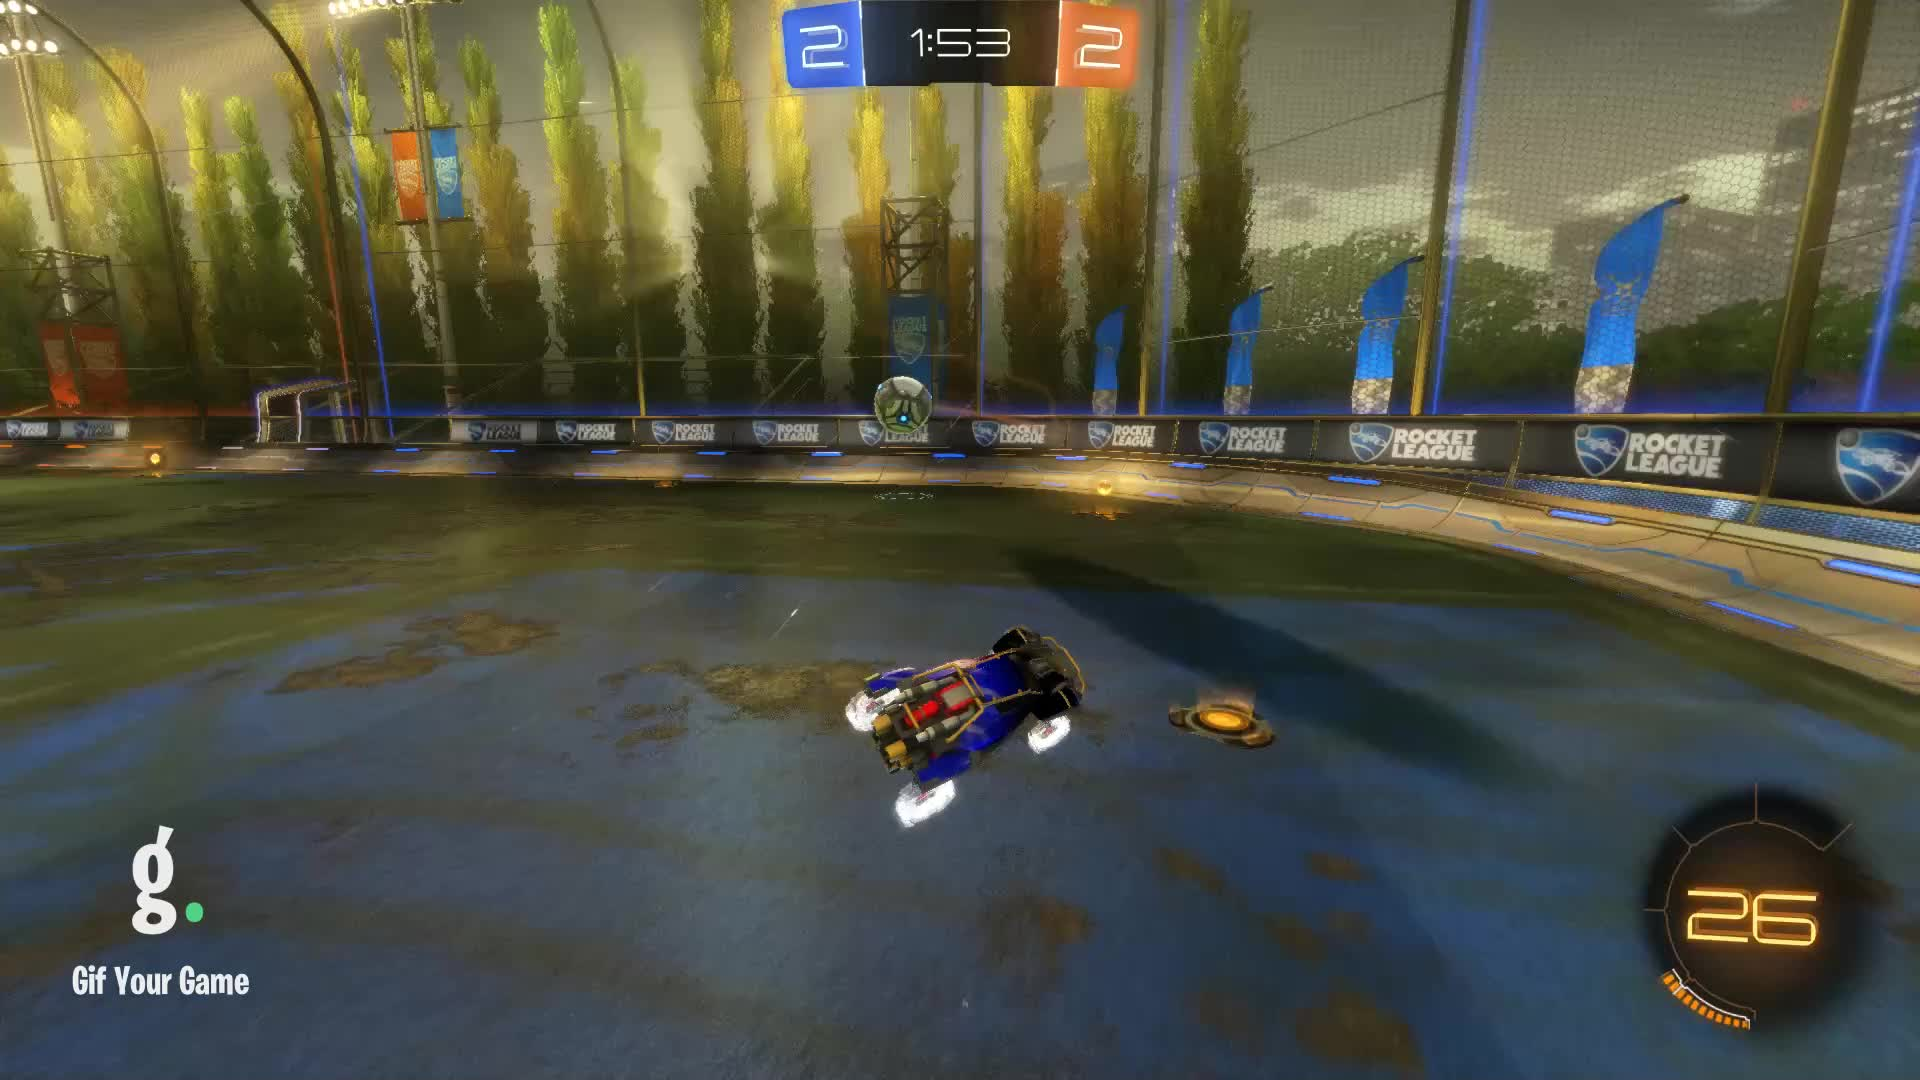 DonJulio, Gif Your Game, GifYourGame, Goal, Rocket League, RocketLeague, Goal 5: DonJulio GIFs